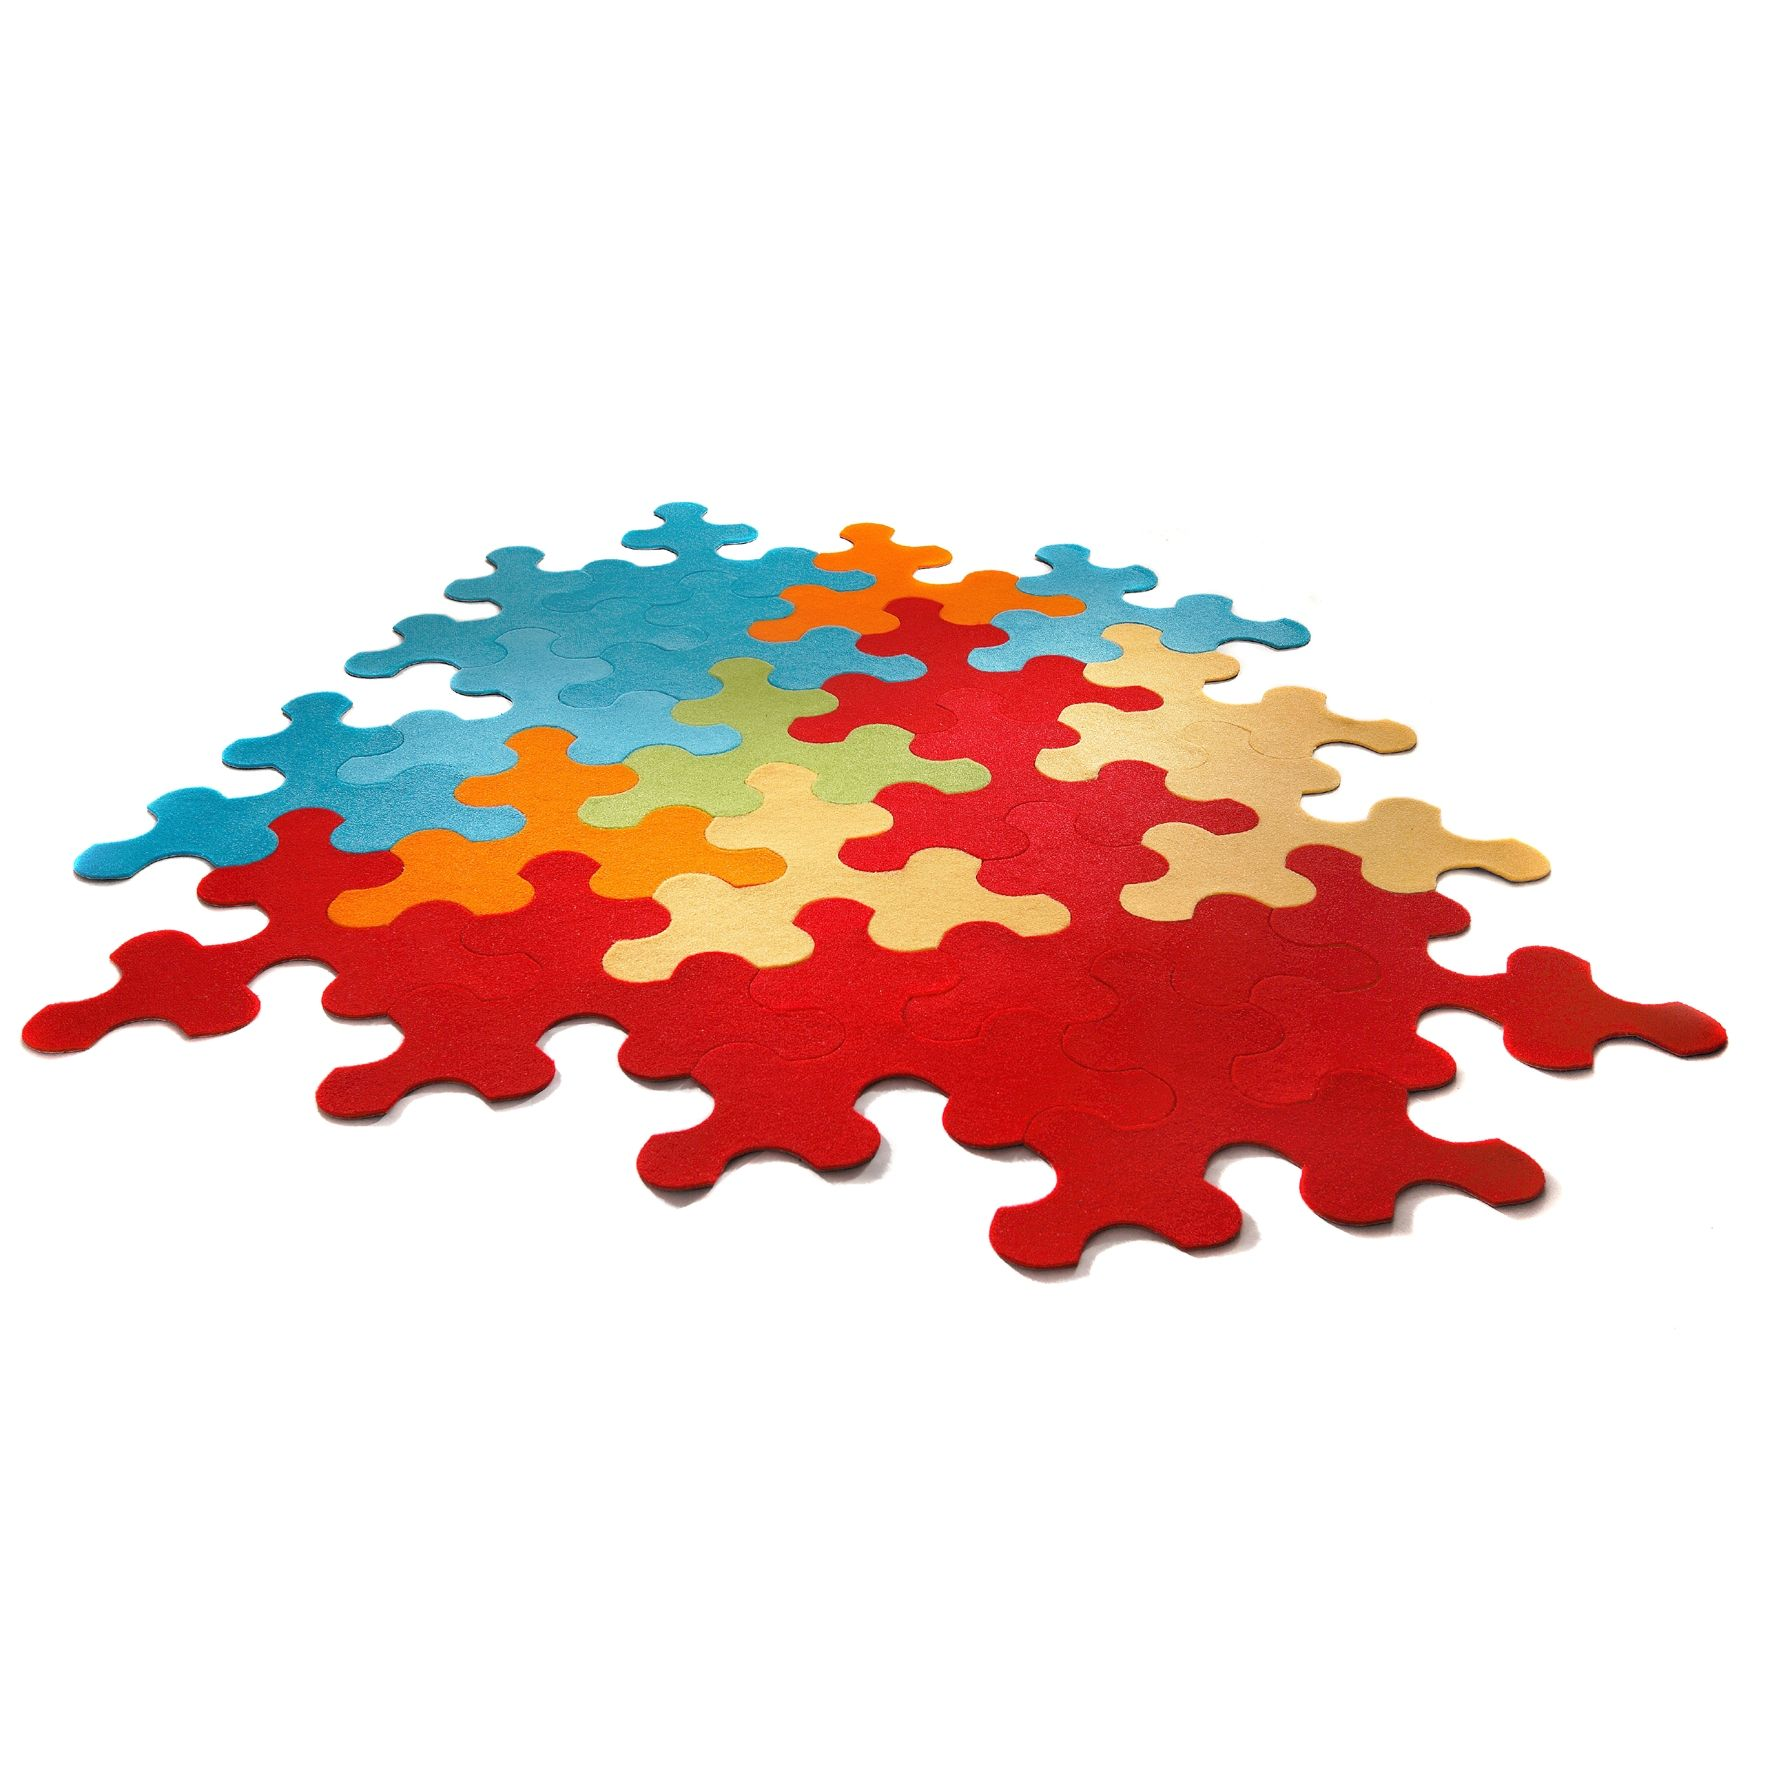 Puzzle Rug Imperial Interlocking Carpet Tiles Shaped Like Jigsaw Pieces 10 To A